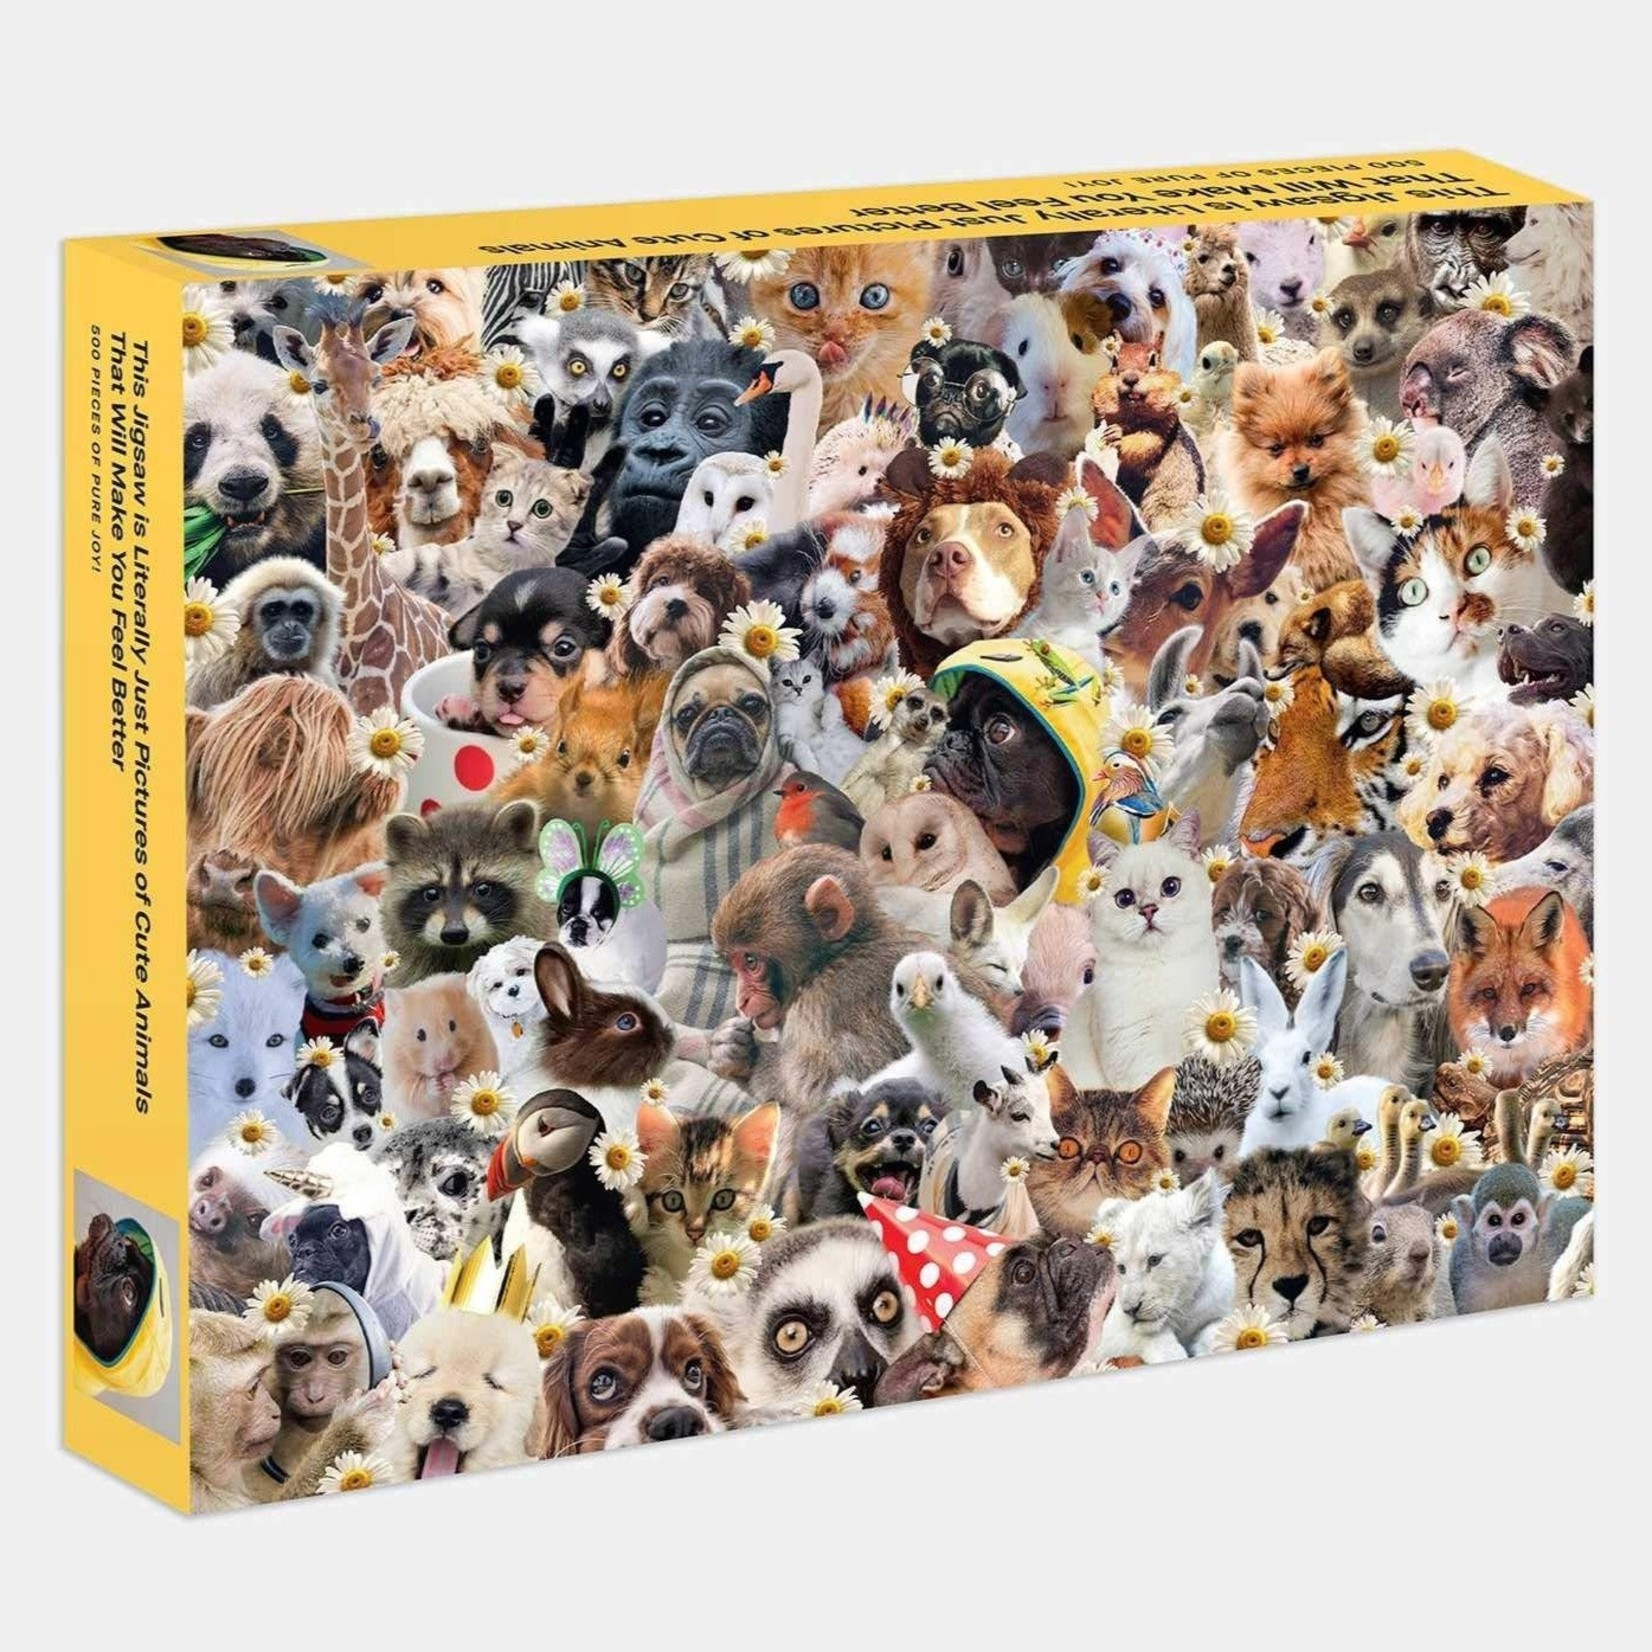 Rizzoli 500 Piece This Jigsaw is Literally Just Pictures of Cute Animals That Will Make You Feel Better Jigsaw Puzzle